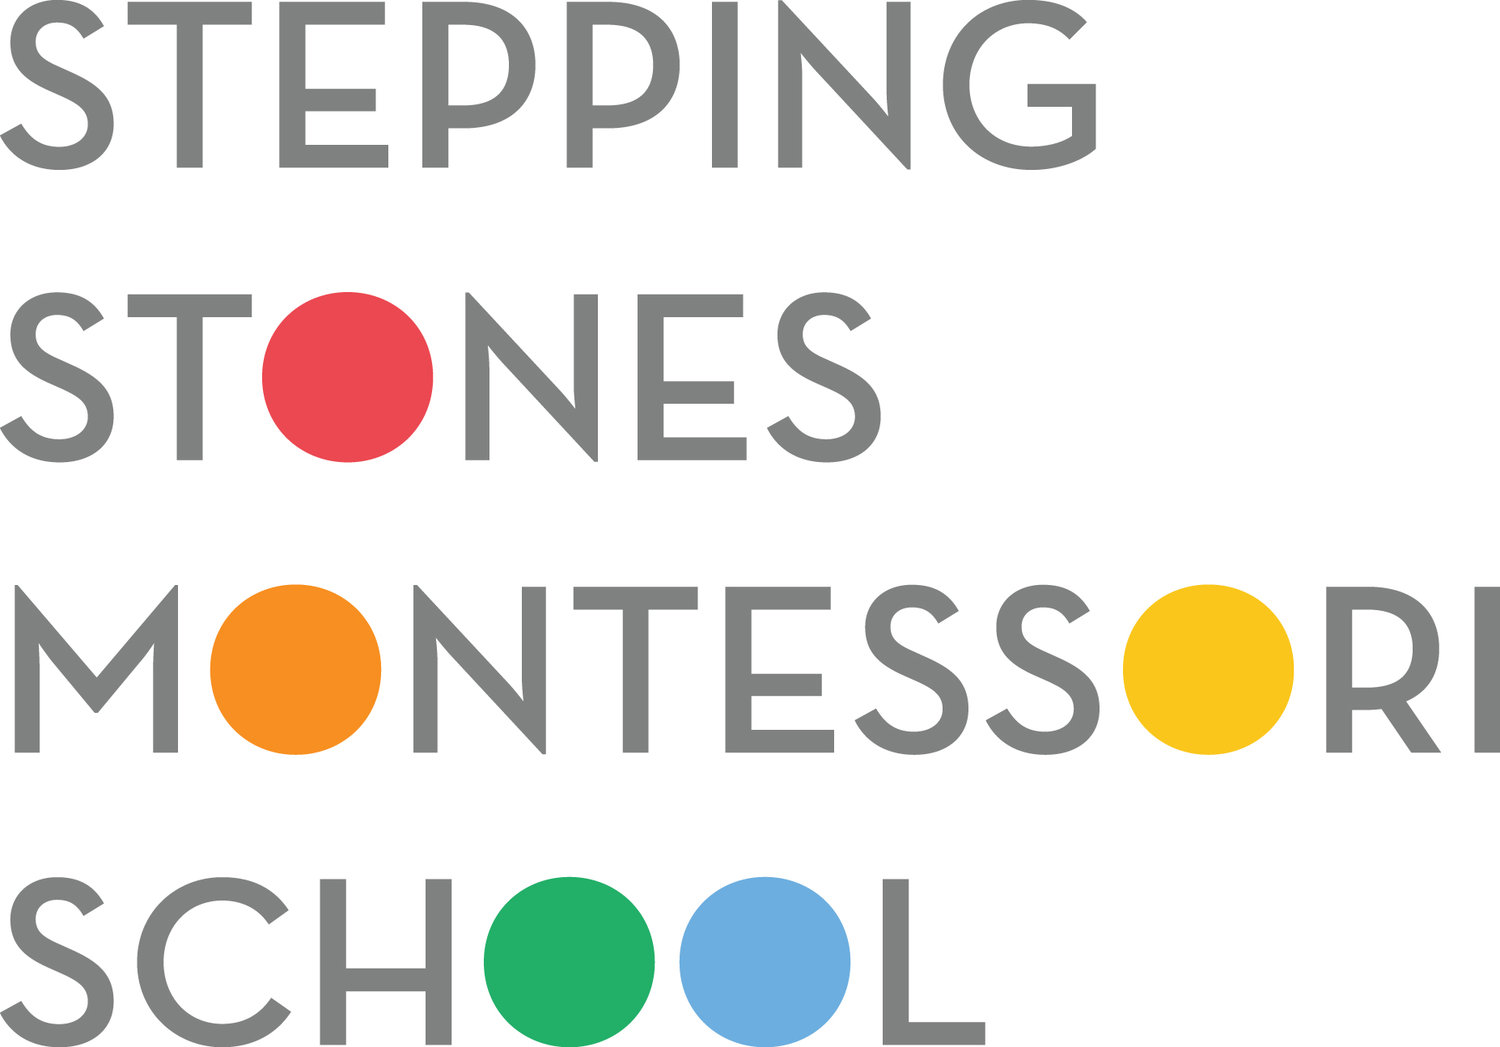 STEPPING STONES MONTESSORI SCHOOL